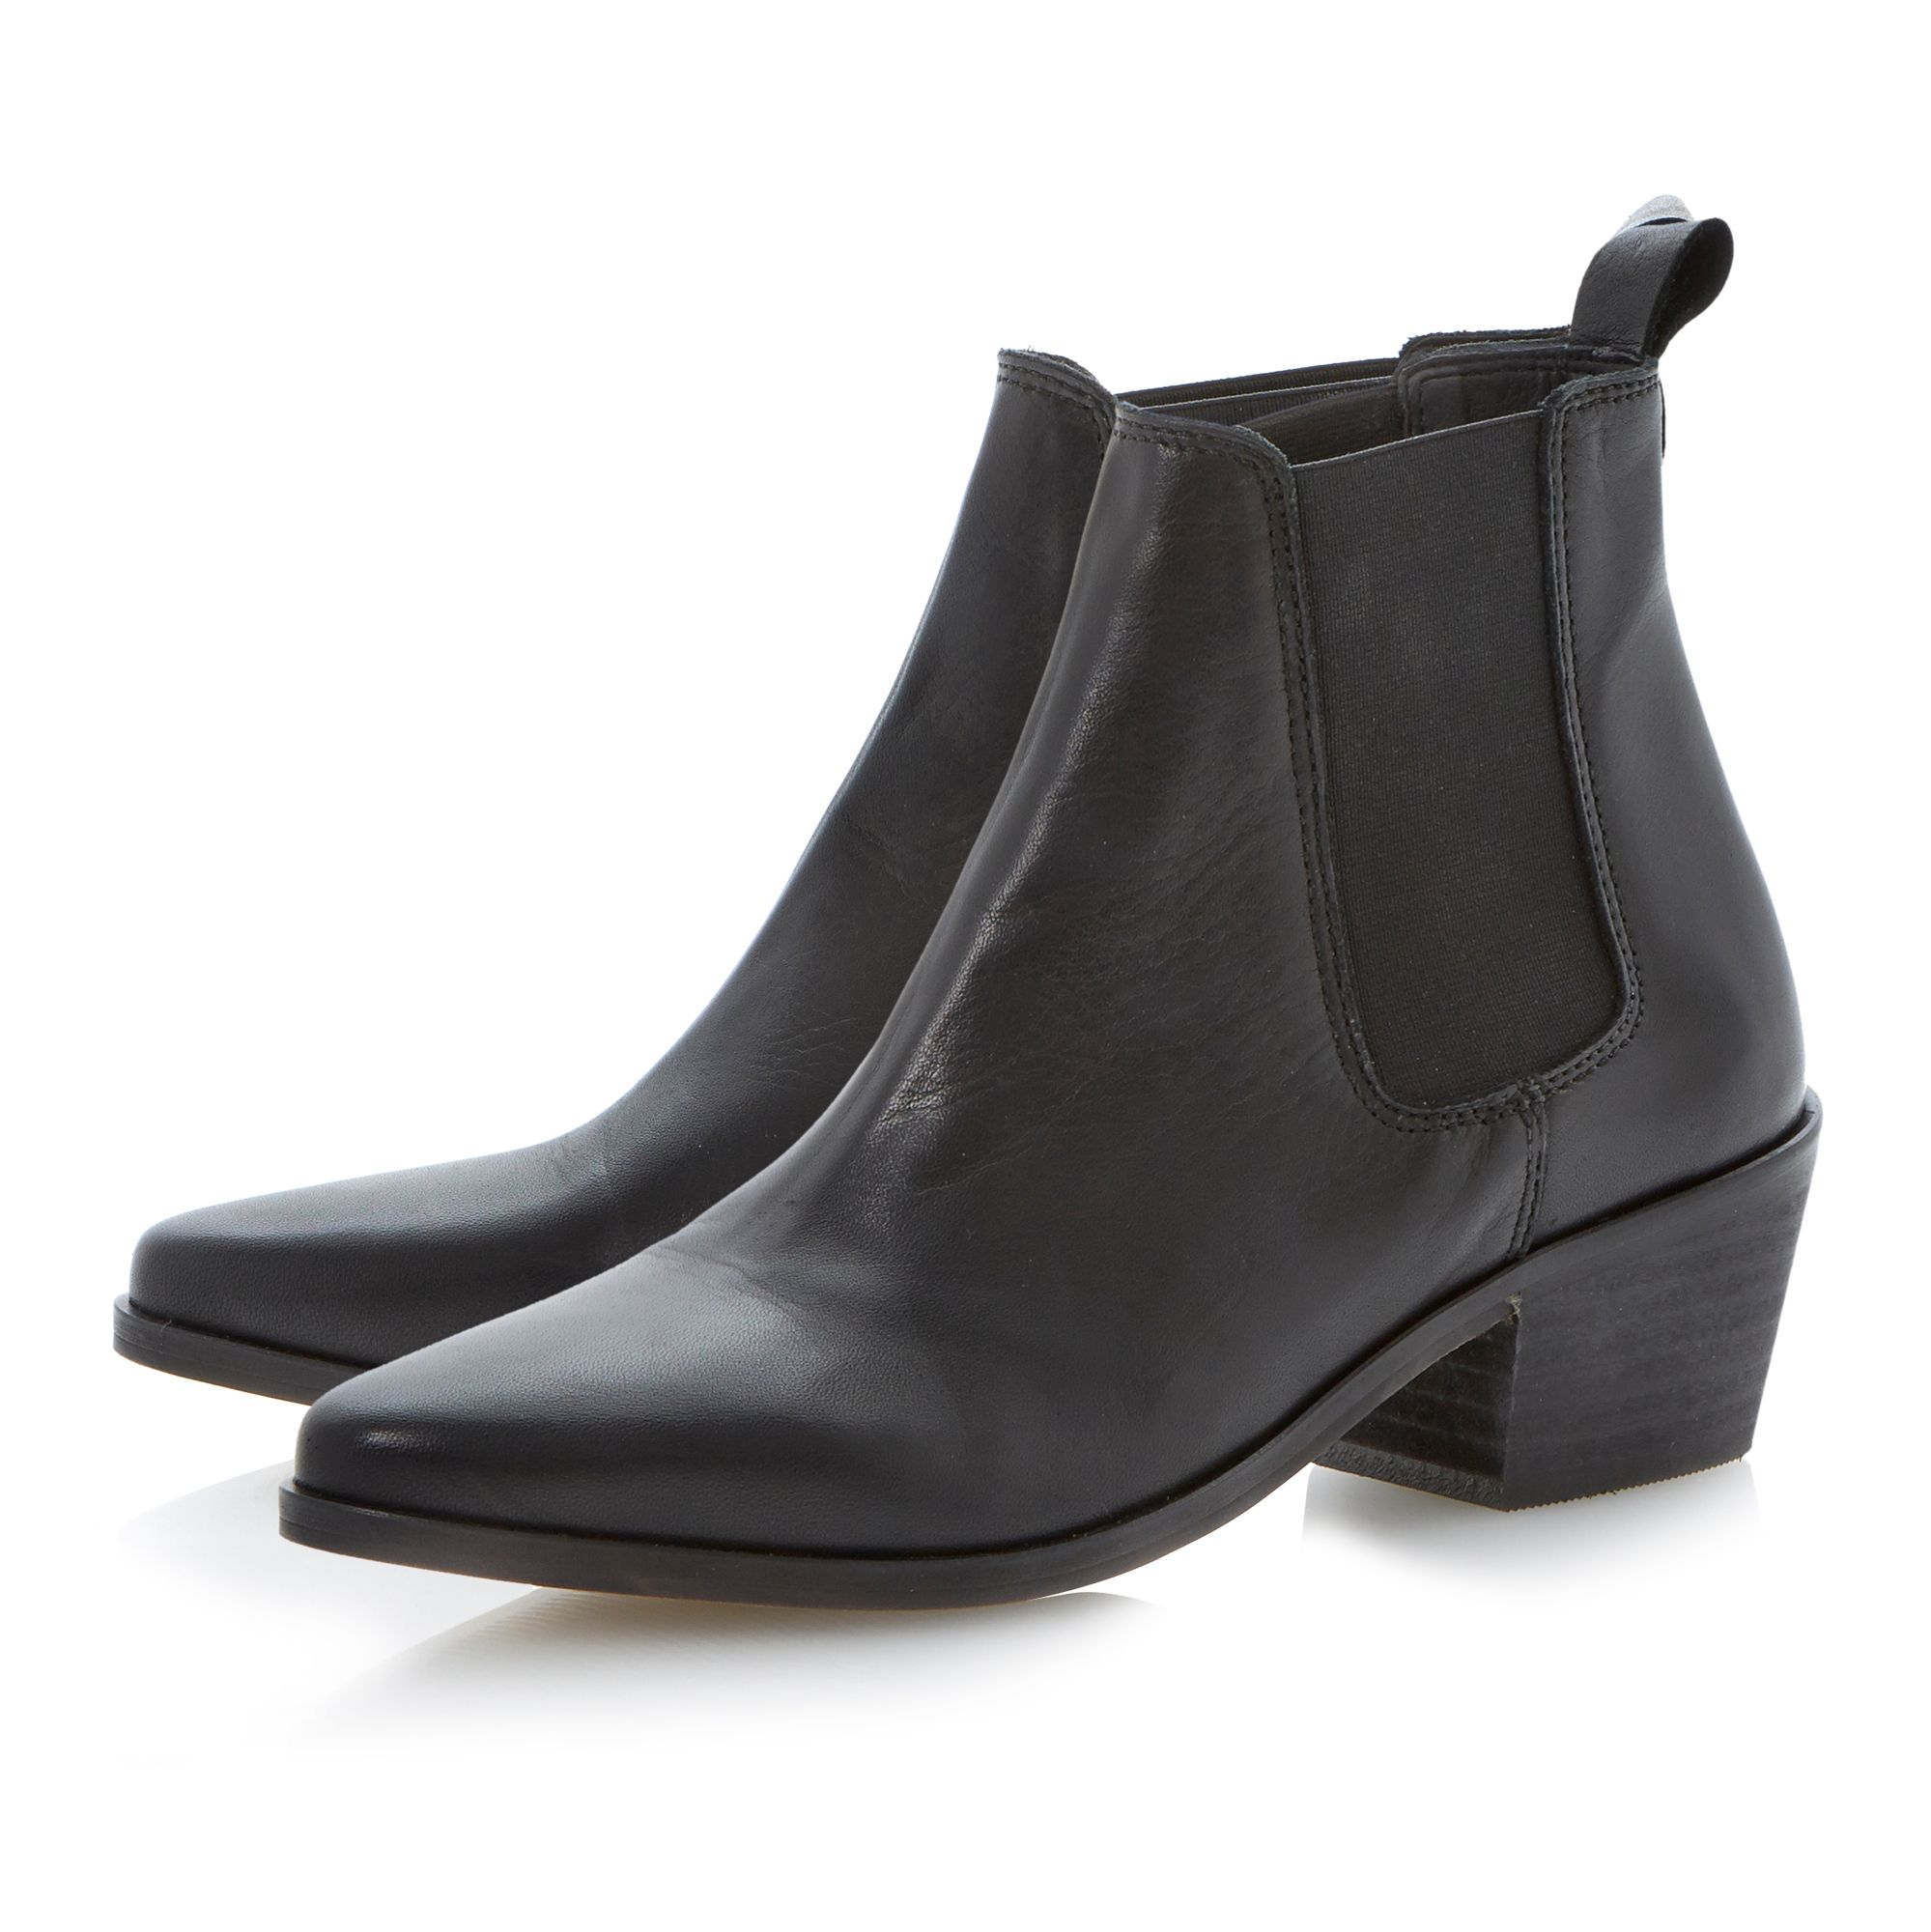 dune leather pointed toe block heel low boots in